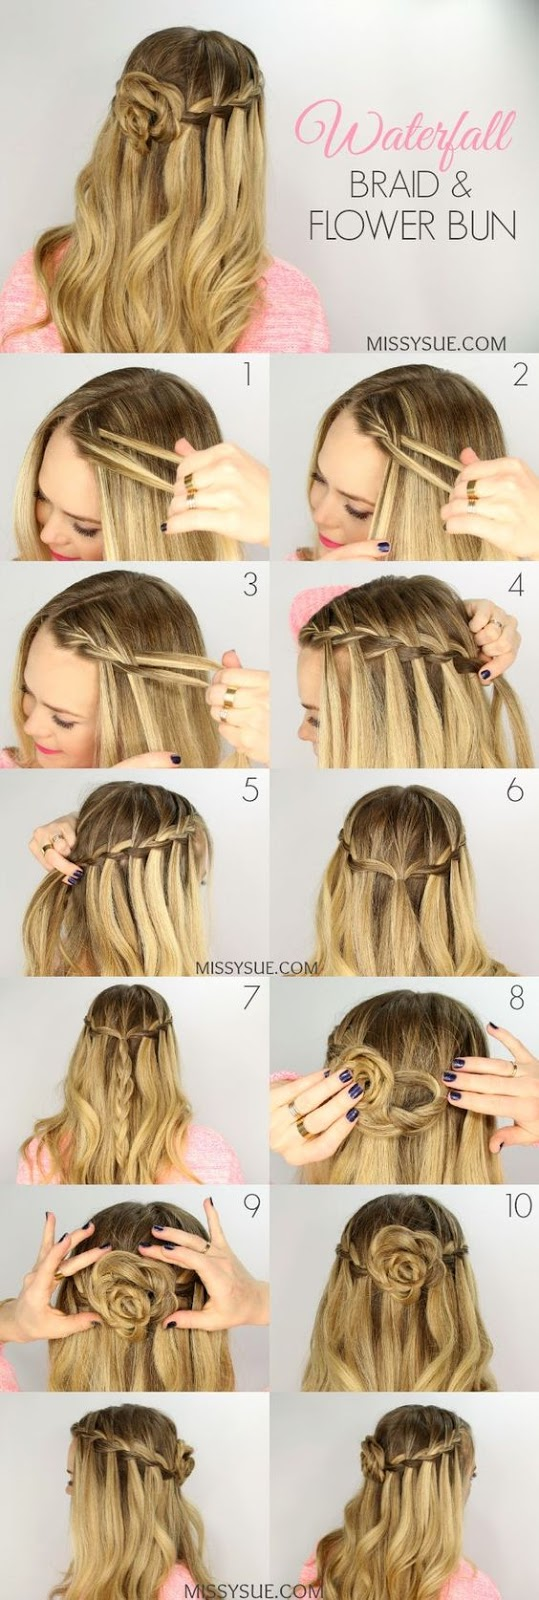 Waterfall Braid and Flower Bun Easy Women's Hairstyles